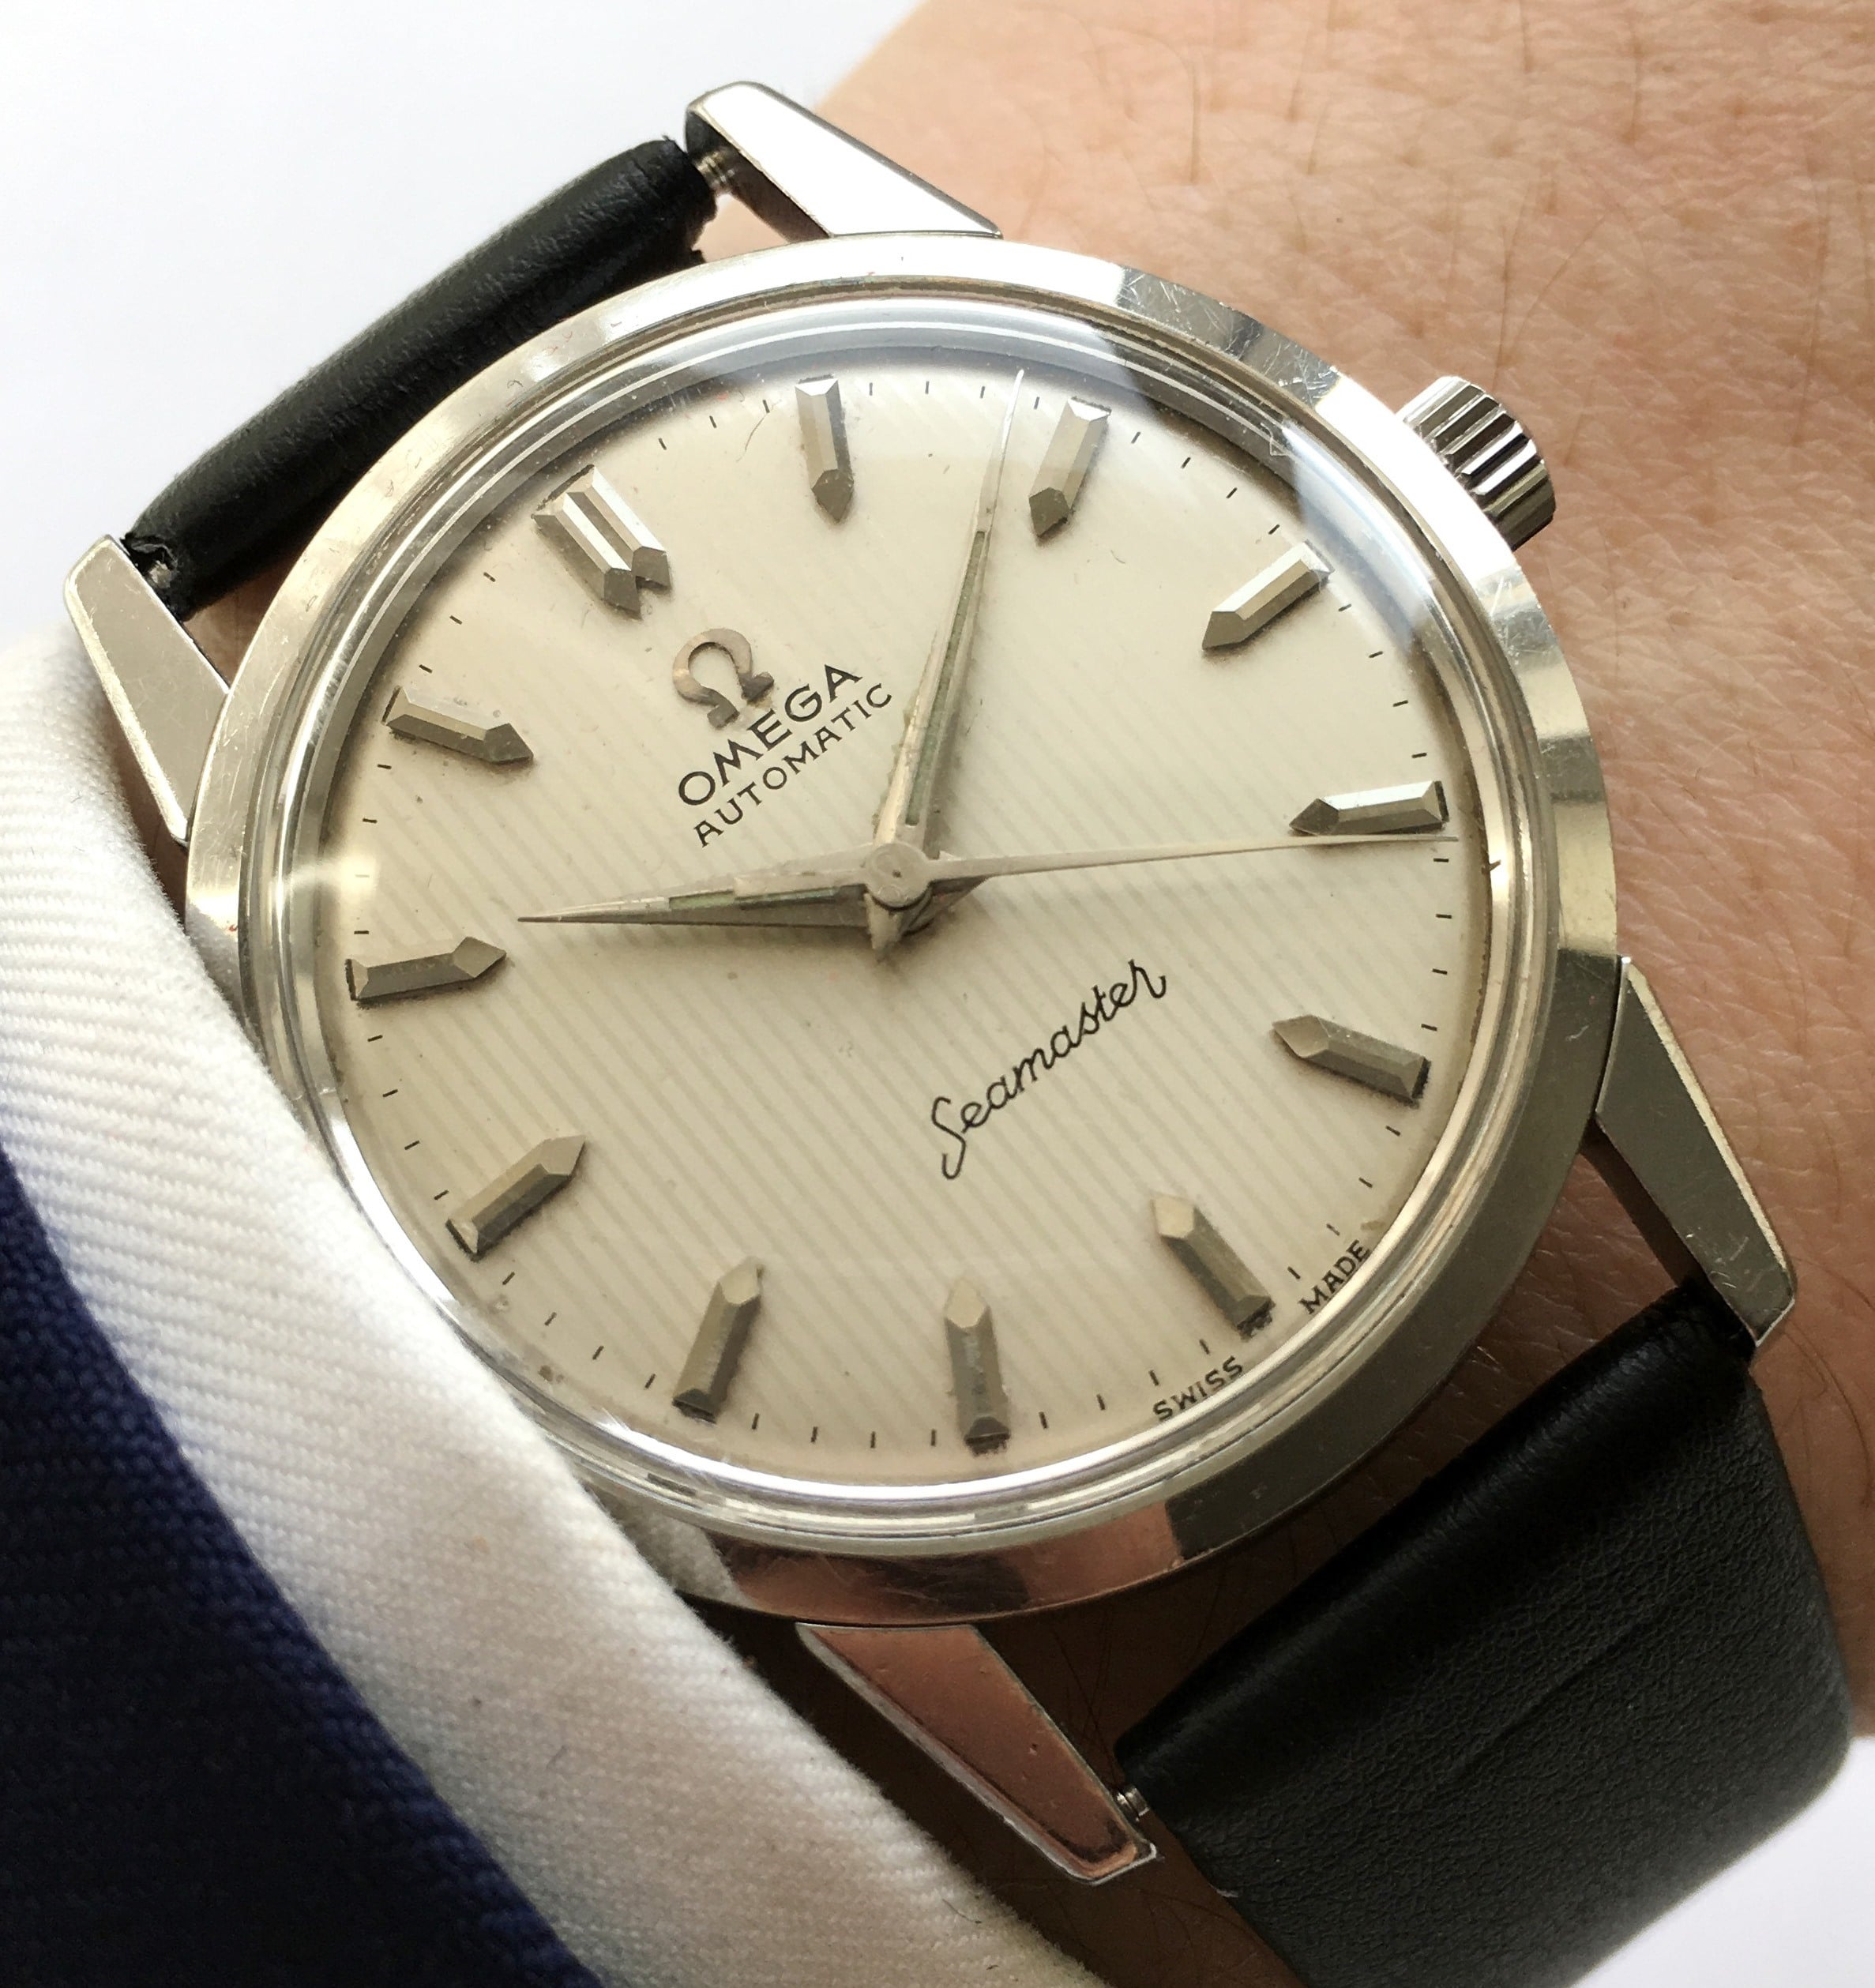 Restored Omega Seamaster Automatic Linen dial